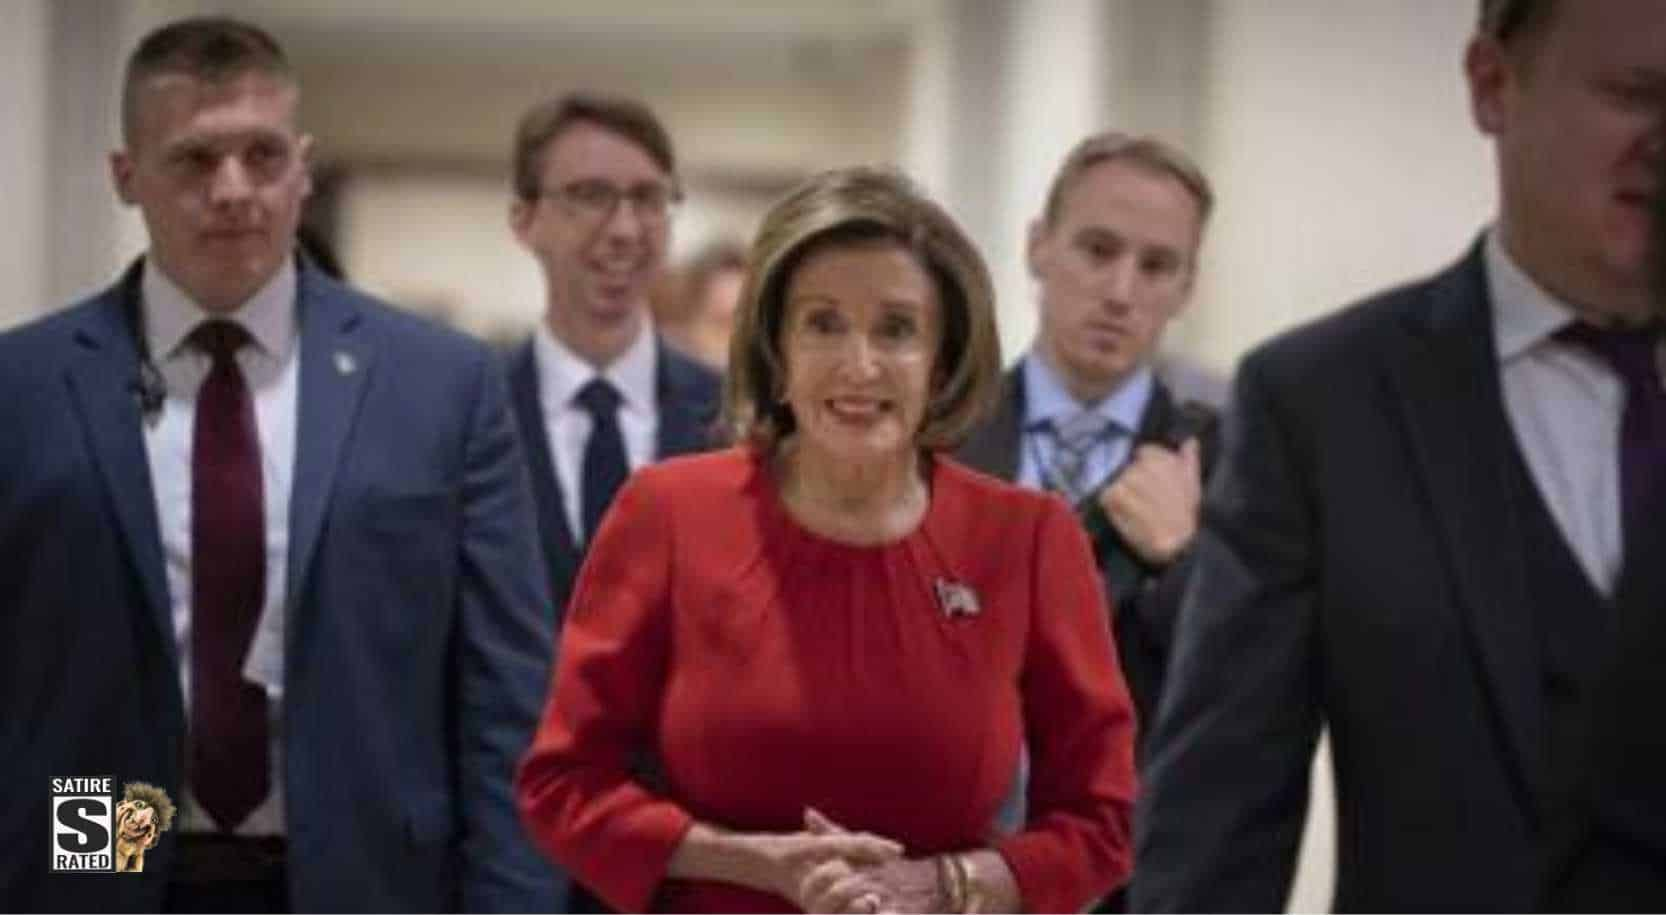 Nancy Pelosi Showed Up To The Impeachment Hearings So Drunk She Fell On Her Face